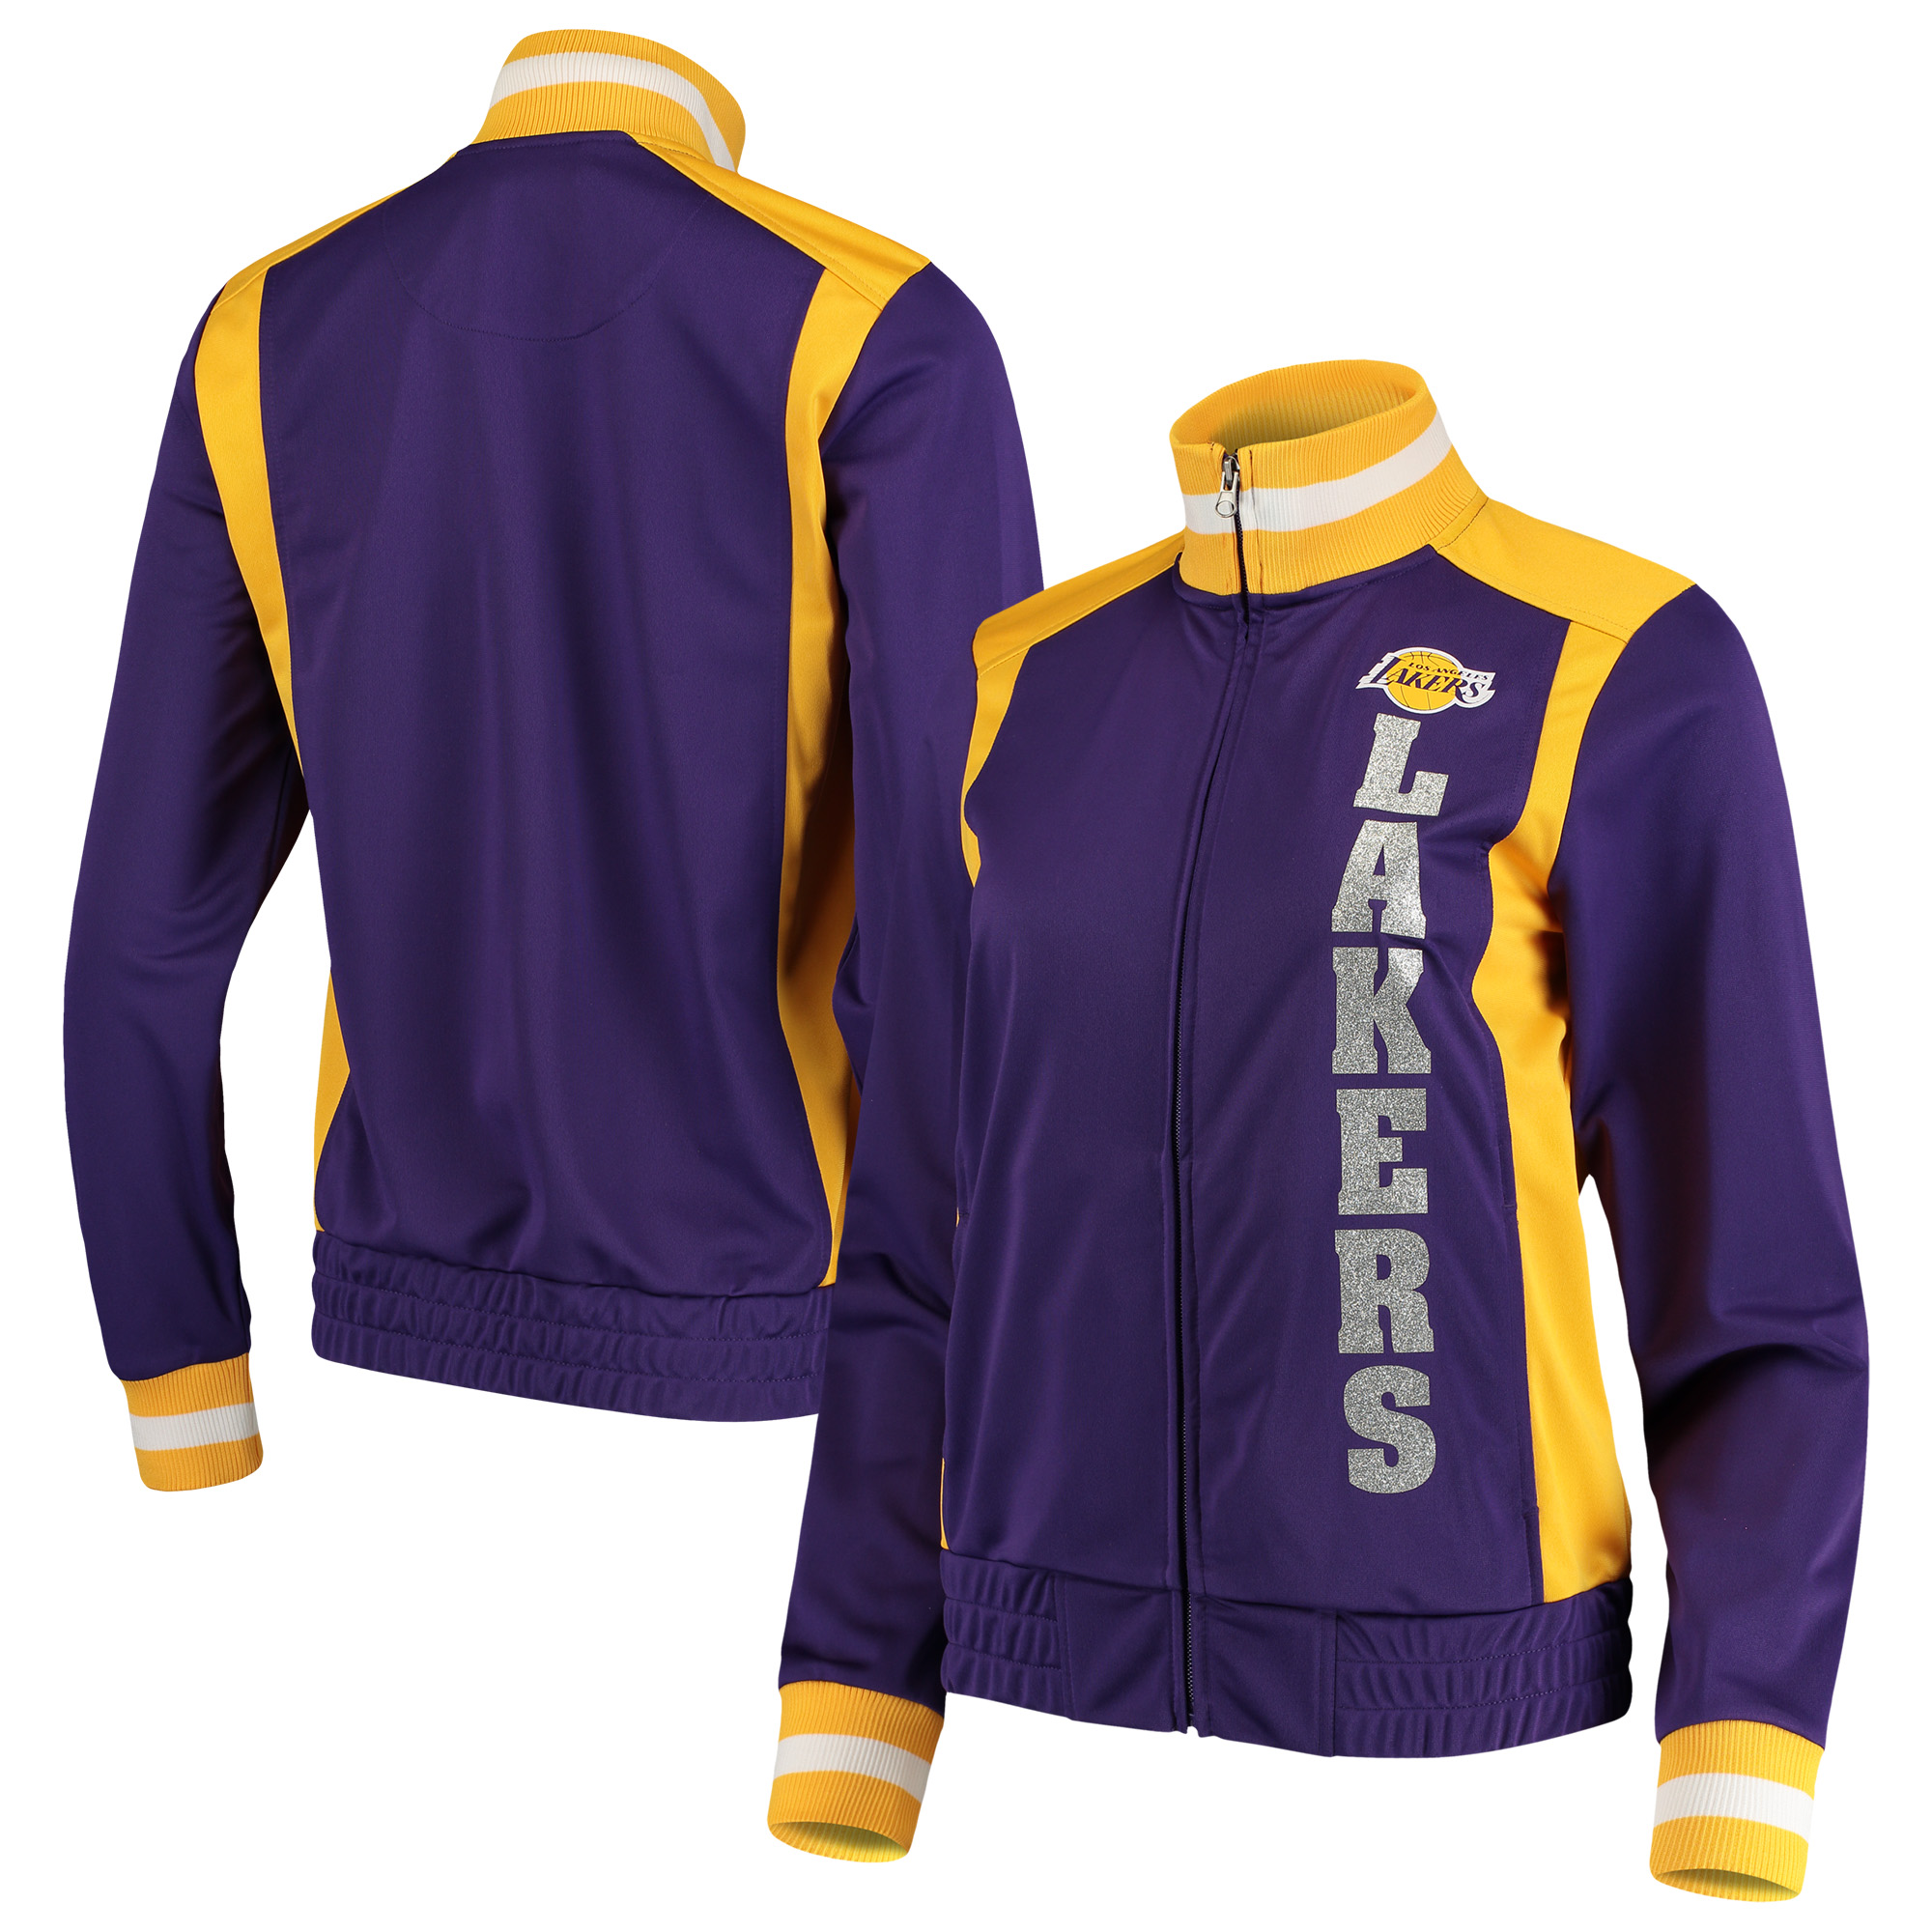 Los Angeles Lakers G-III 4Her by Carl Banks Women's On-Deck Platinum Glitter Track Jacket - Purple/Gold